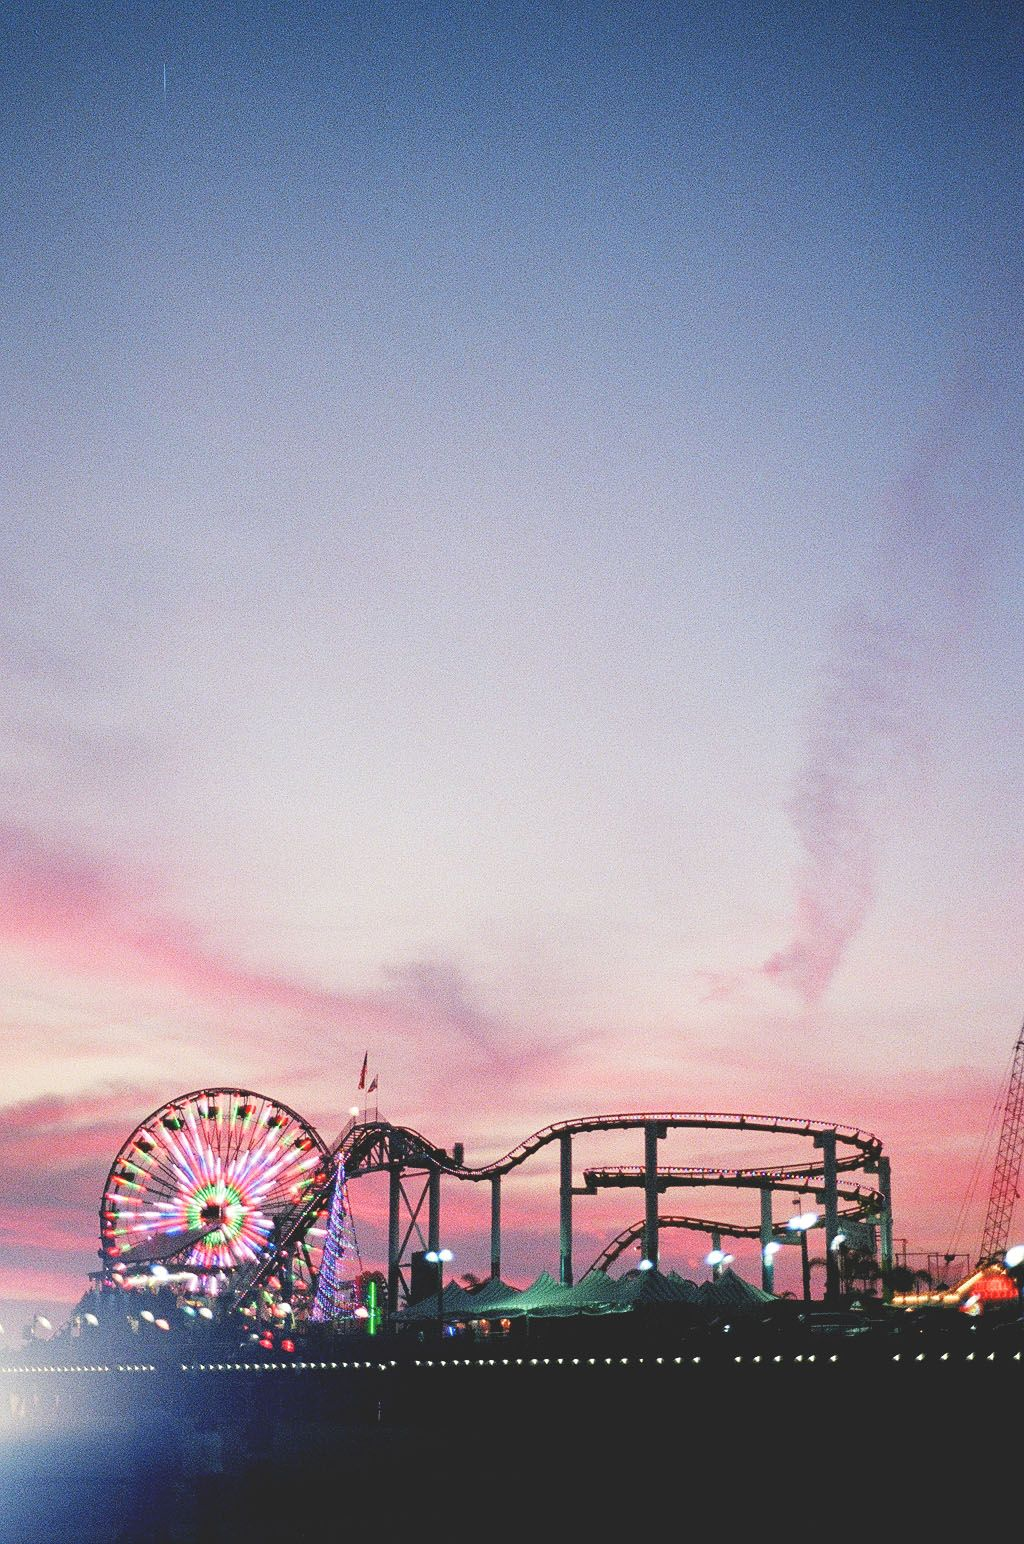 Summer Nights At The Fair